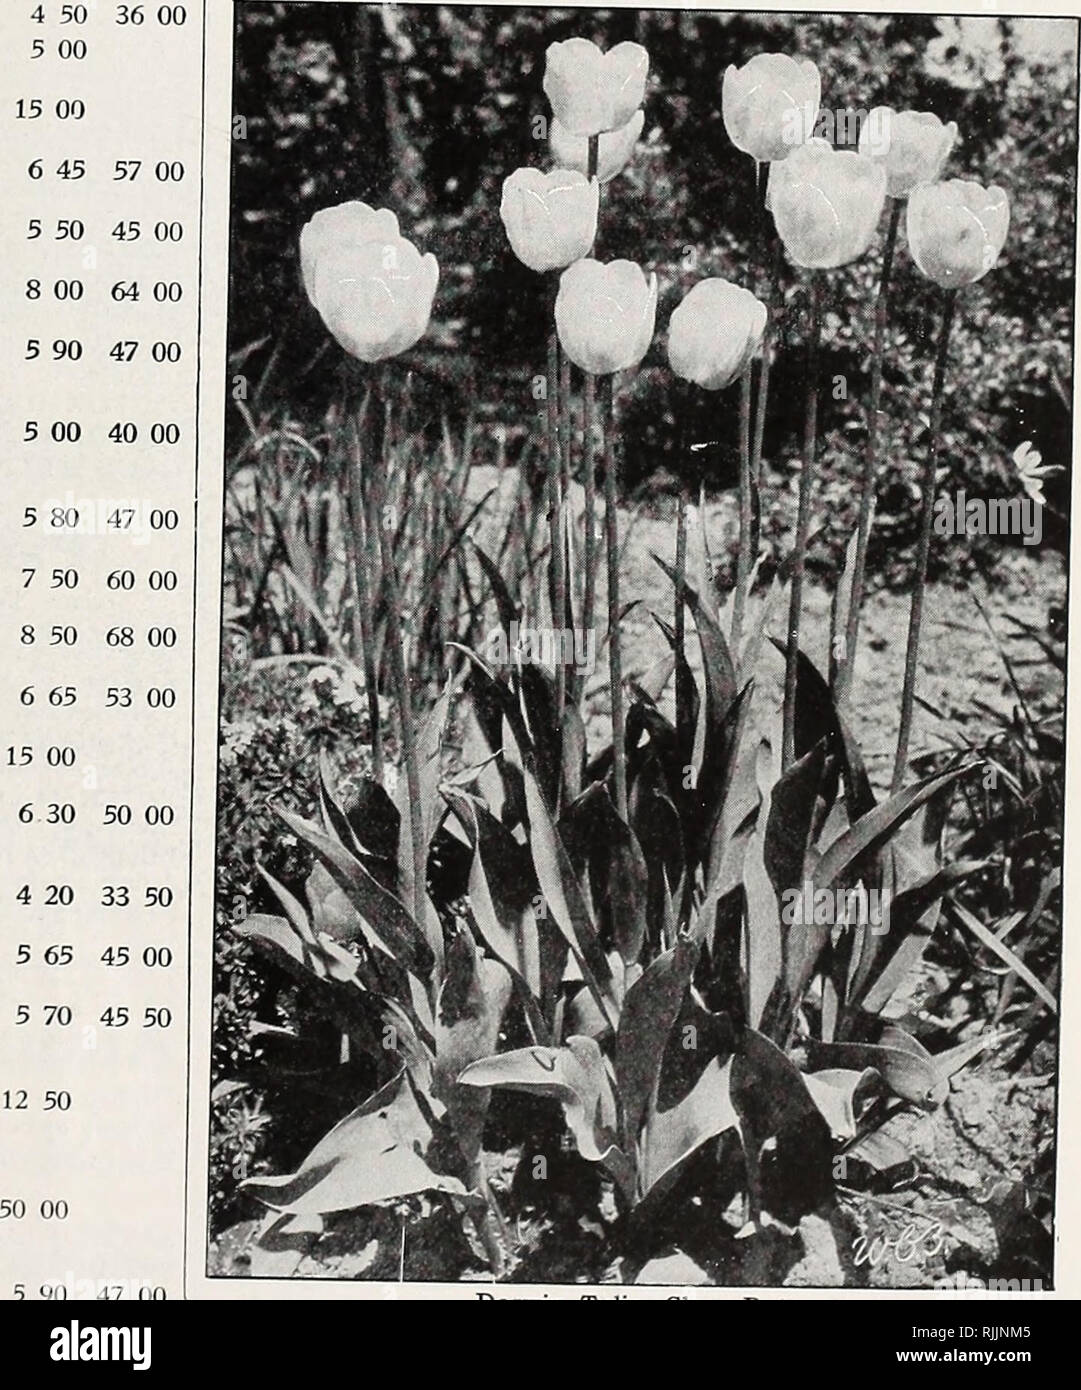 . Beckert's bulbs. Nurseries (Horticulture) Pennsylvania Pittsburgh Catalogs; Nursery stock Pennsylvania Pittsburgh Catalogs; Vegetables Seeds Pennsylvania Pittsburgh Catalogs; Flowers Seeds Pennsylvania Pittsburgh Catalogs; Bulbs (Plants) Pennsylvania Pittsburgh Catalogs. BECKERTS ANNUAL AUTUMN CATALOGUE OF CHOICEST BULBS Giant Darwin Tulips, continued AFTERGLOW ({Catherine Havemeyer). 26-D. Doz. 100 1,000 New color in Darwins. Clear, deep salmon- °-rjngiC' lit?ntcr at tne edges of the petals; in- side dark, glowing orange 40 els. each. S3 00 $10 00 APHRODITE. (New.) Most beautiful pink any l - Stock Image